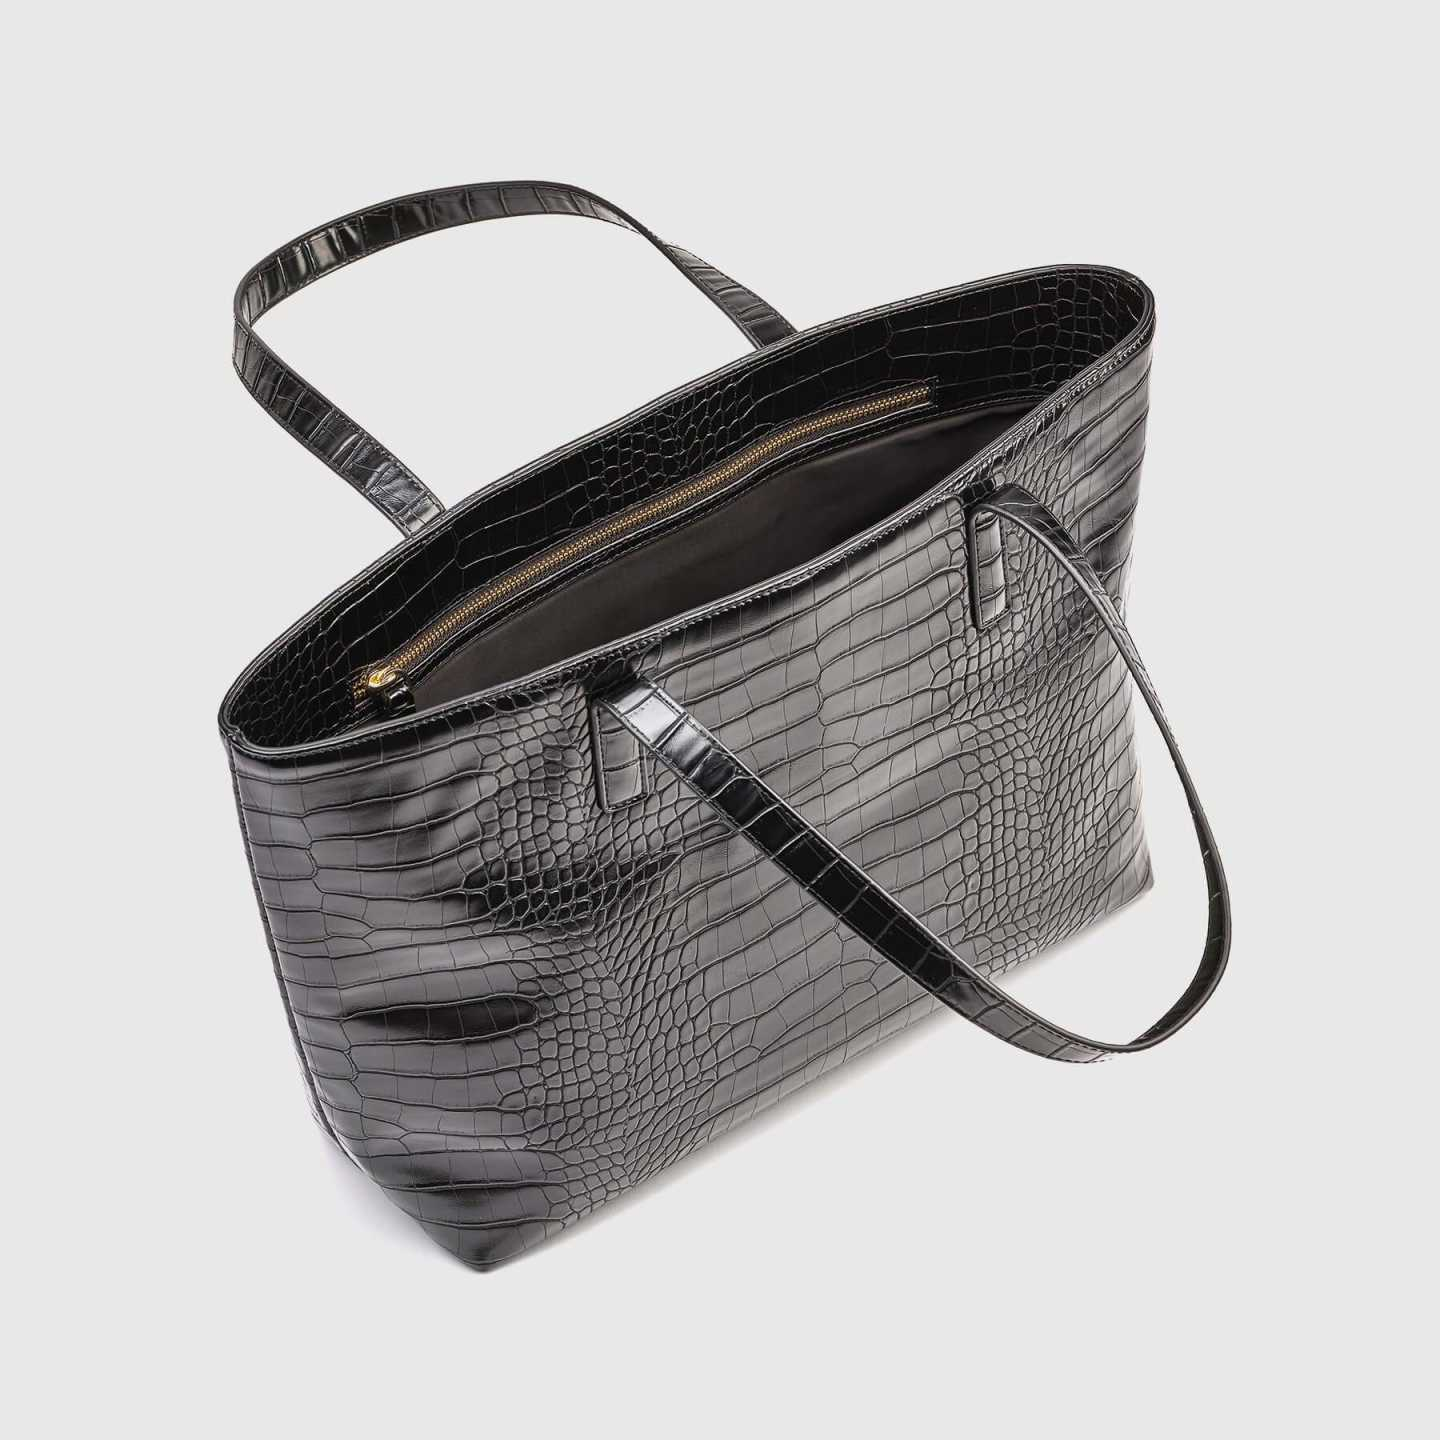 vegan leather bag in black croco from side